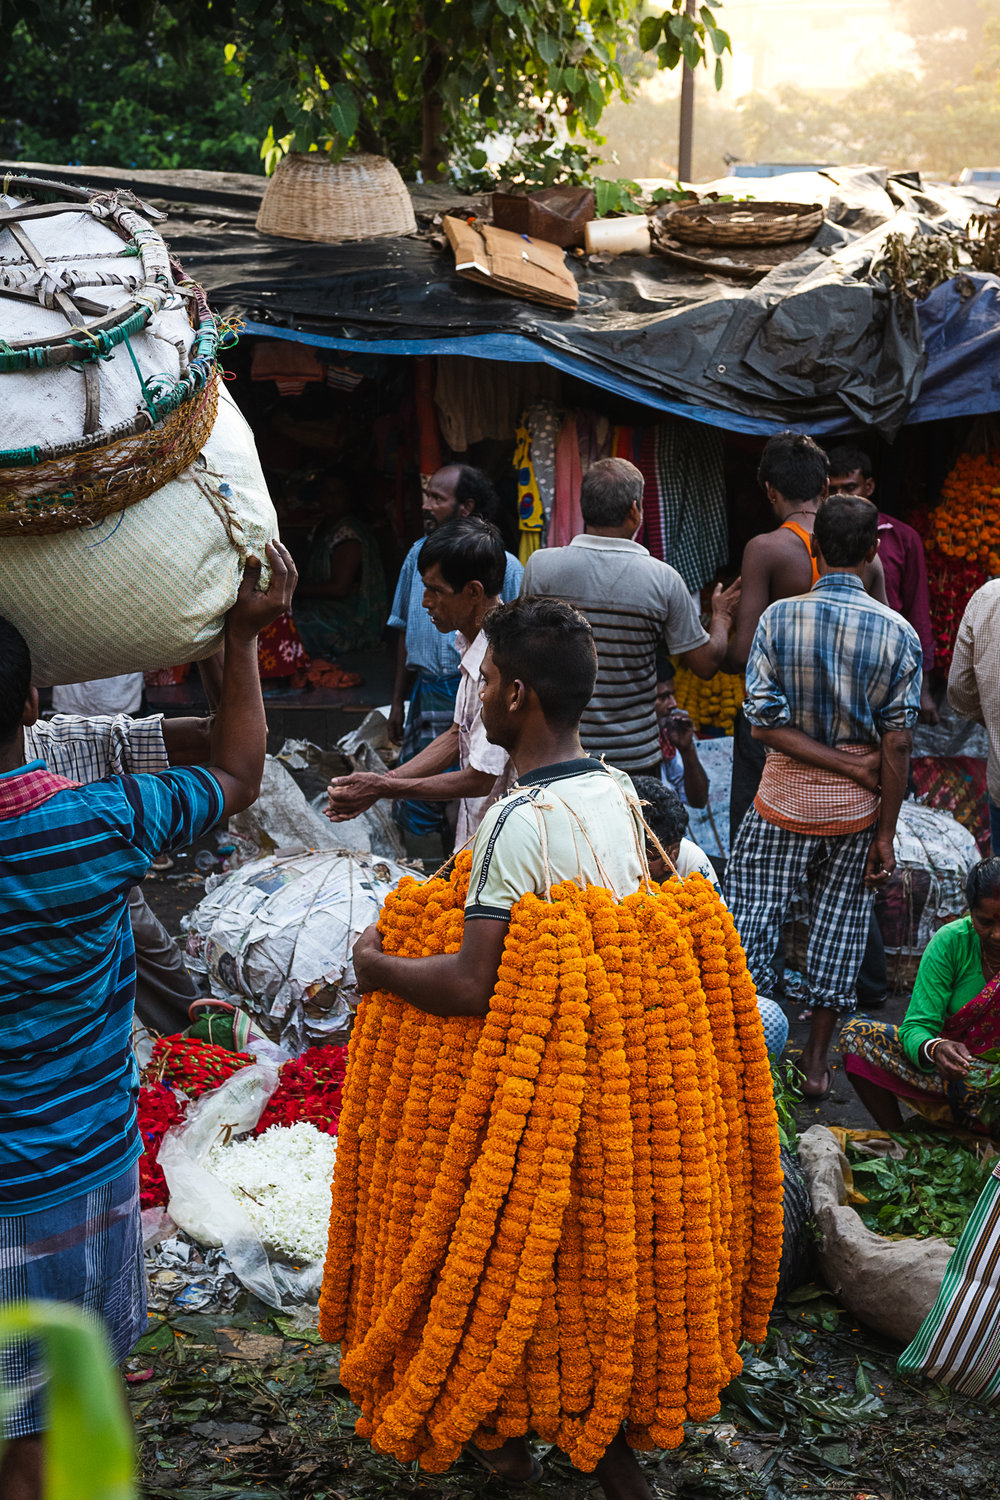 Mallik Ghat Flower Market - vendor carrying marigold chains